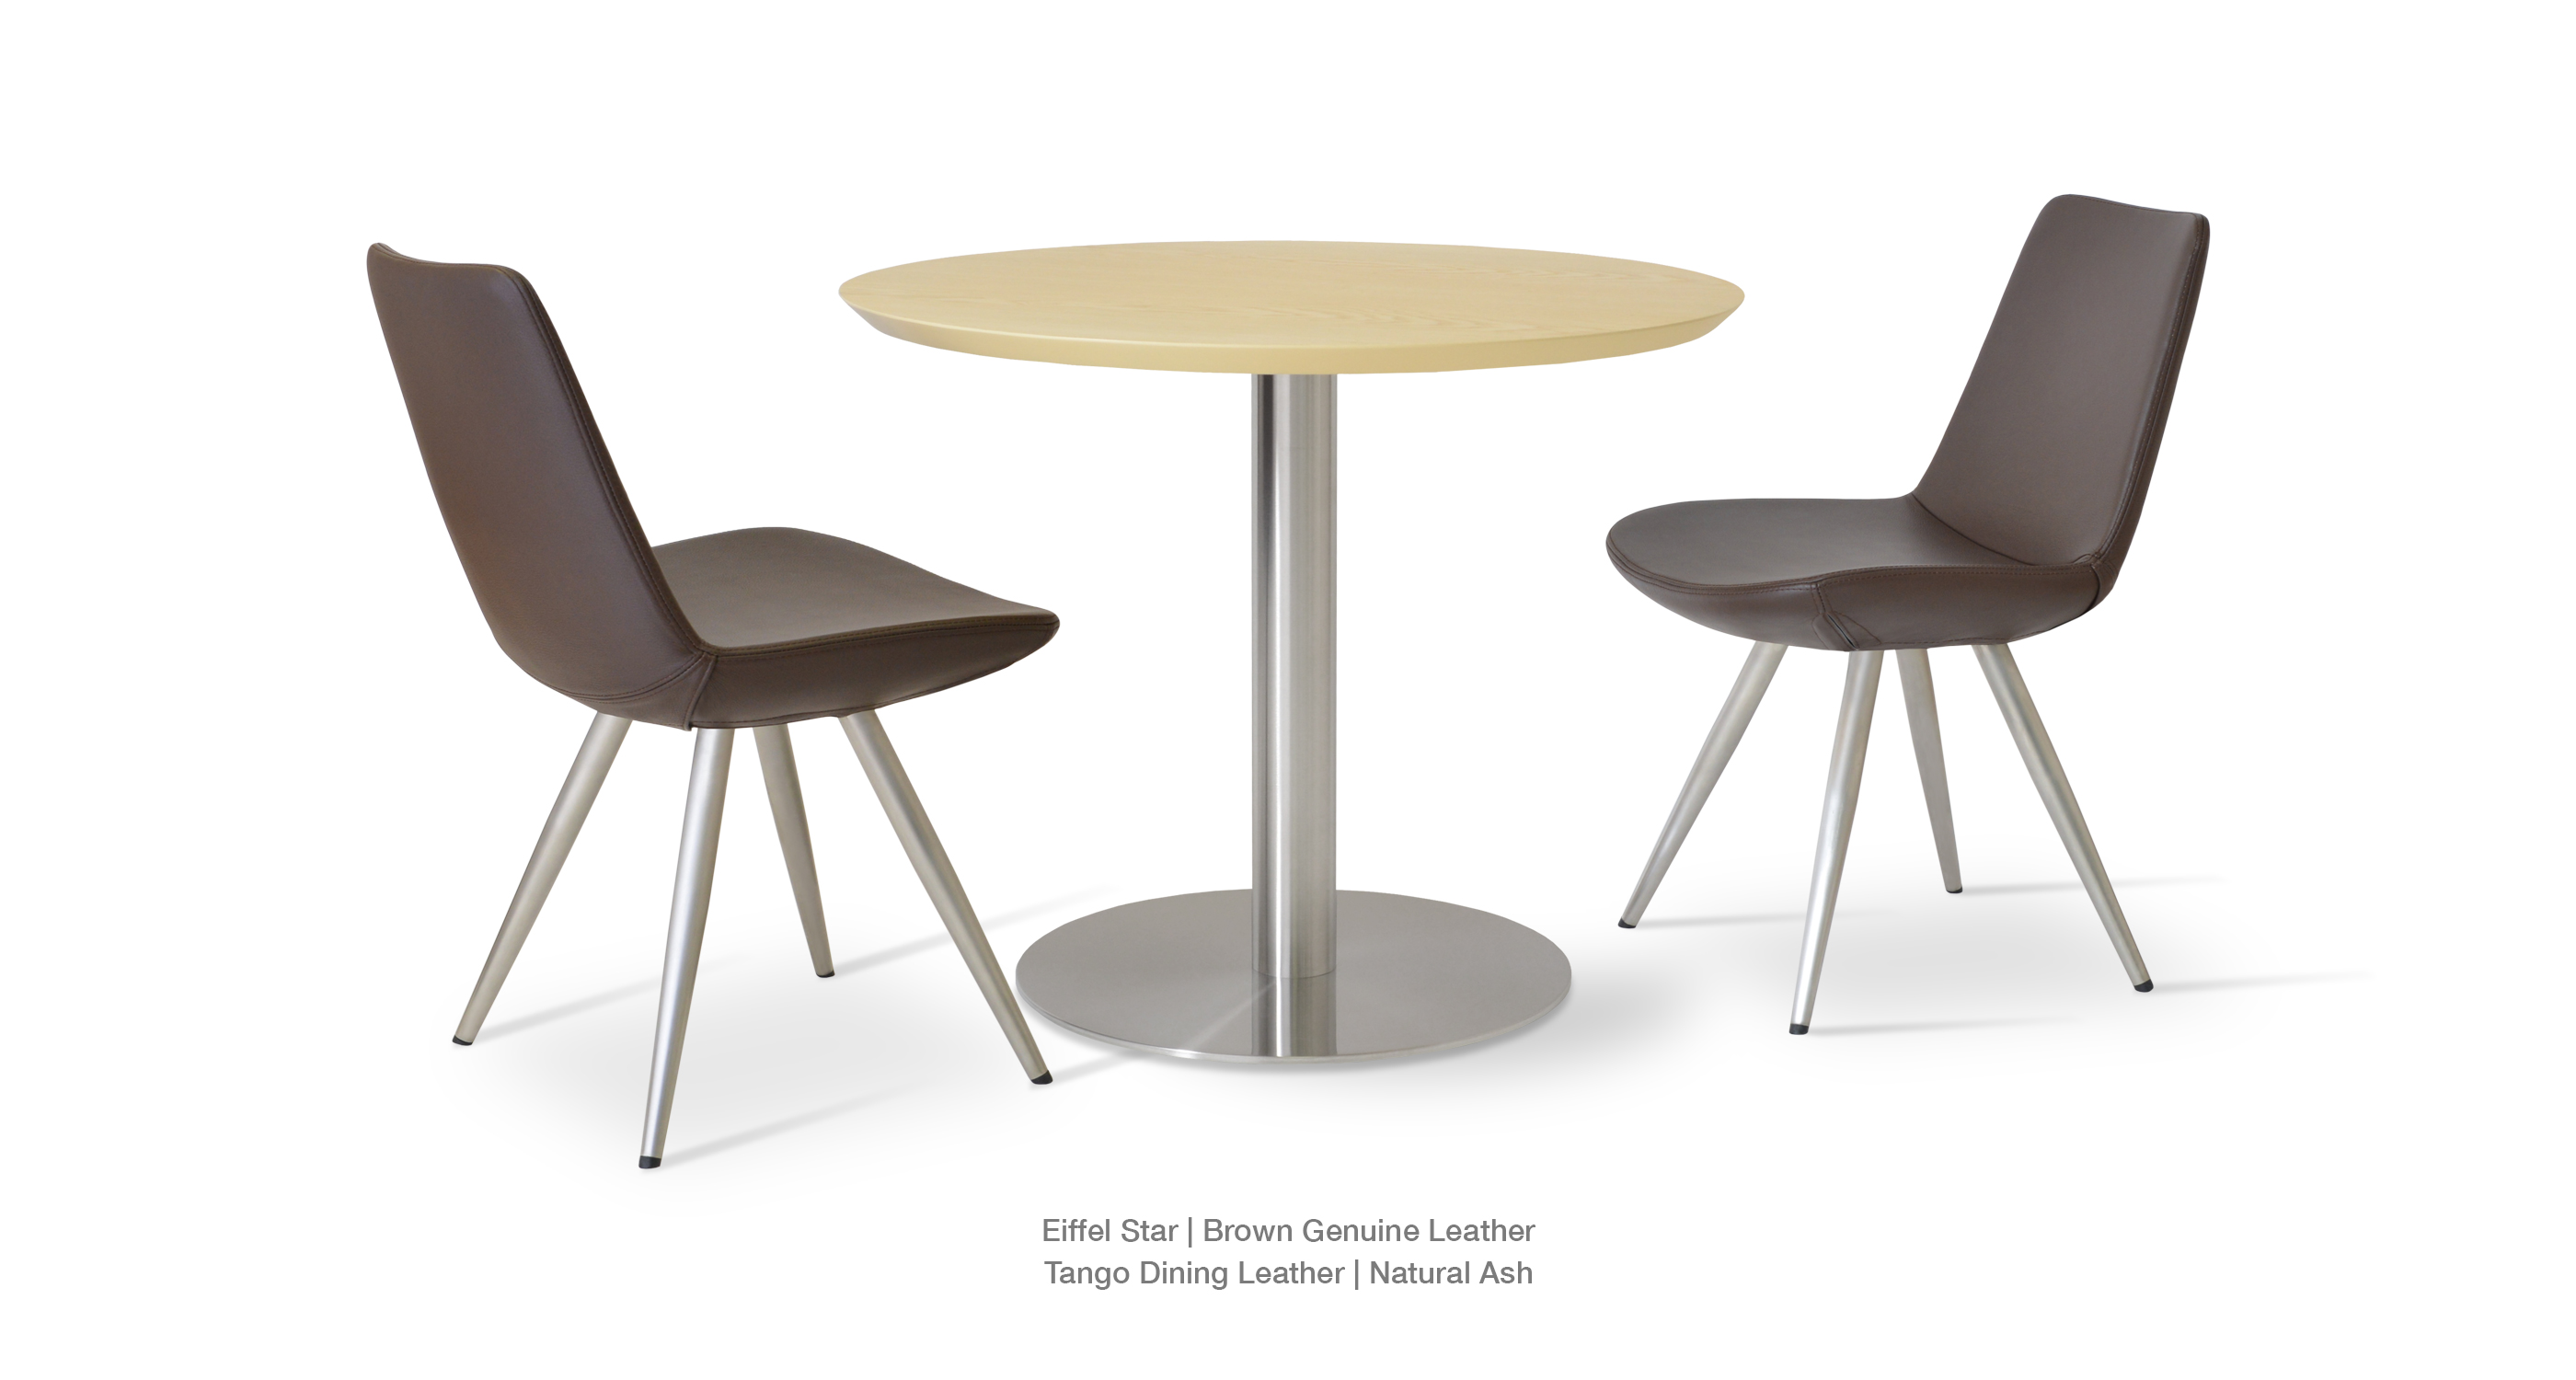 Eiffel Star Brown G Leather Tango Dining